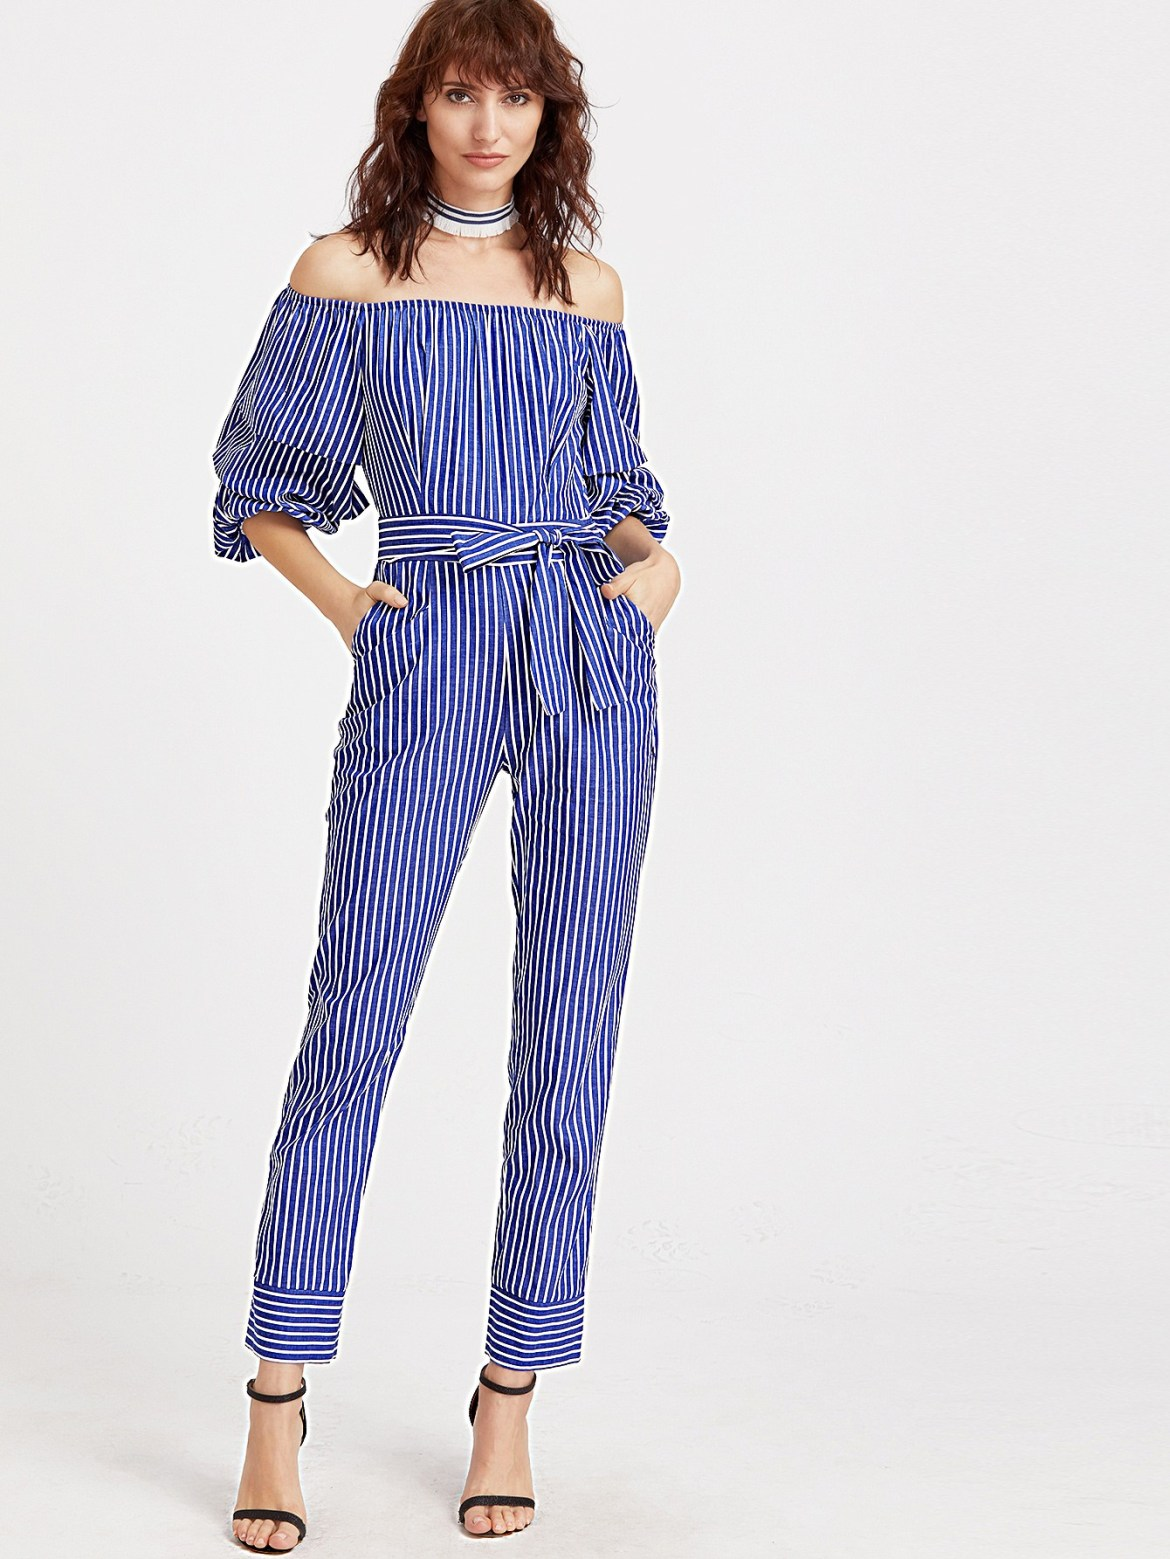 SHEIN WISHLIST- OFF THE SHOULDER JUMPSUITS OBSESSION